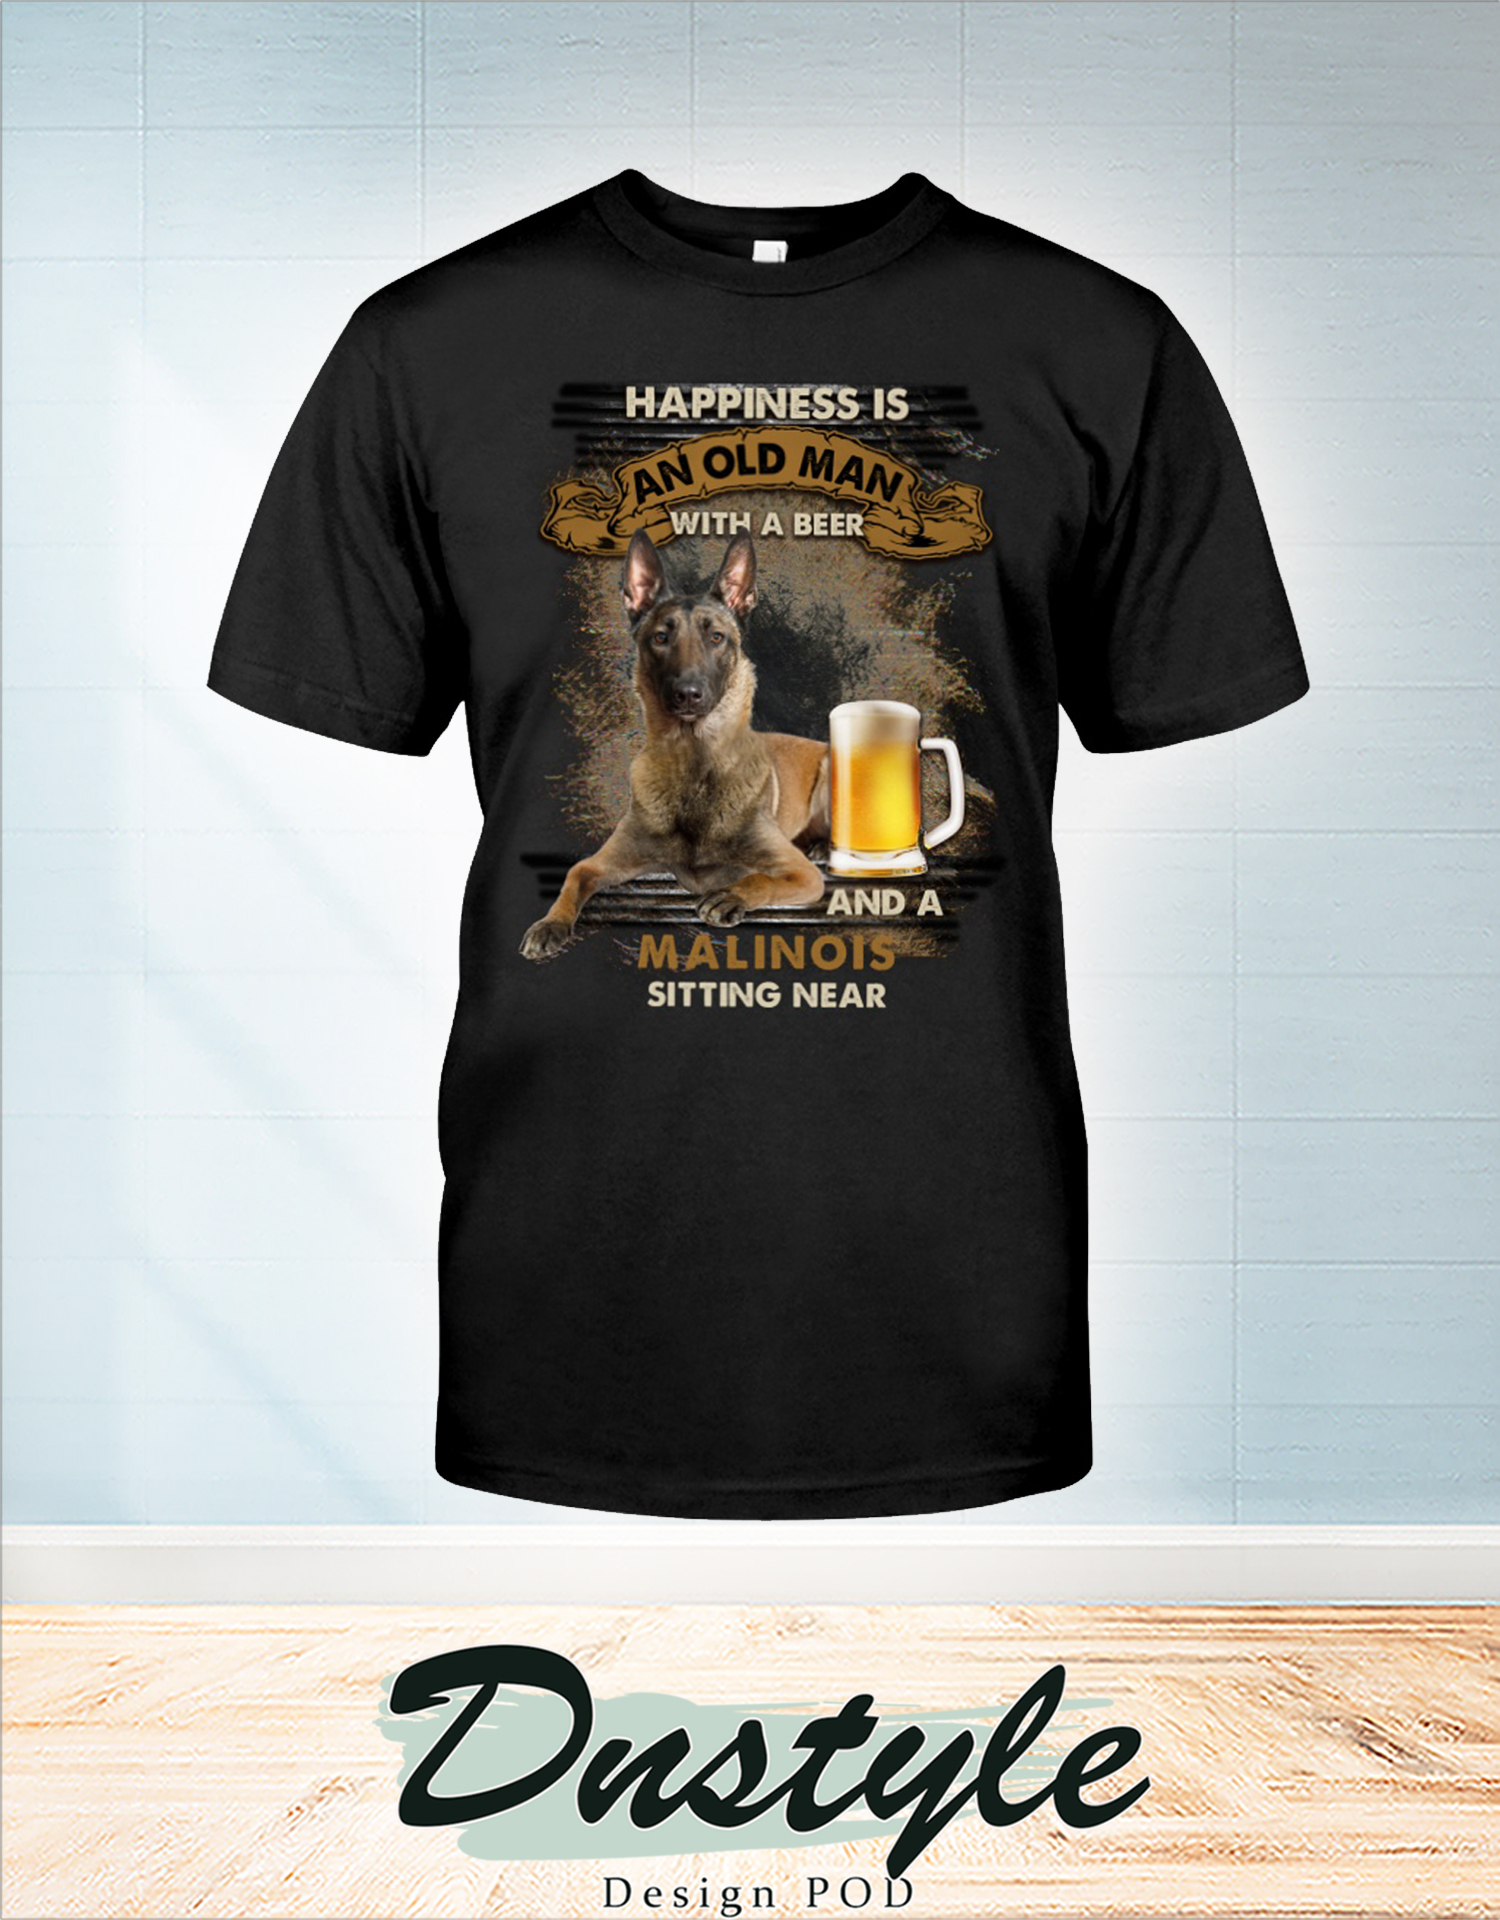 Happiness is an old man with a beer and a Malinois sitting near t-shirt